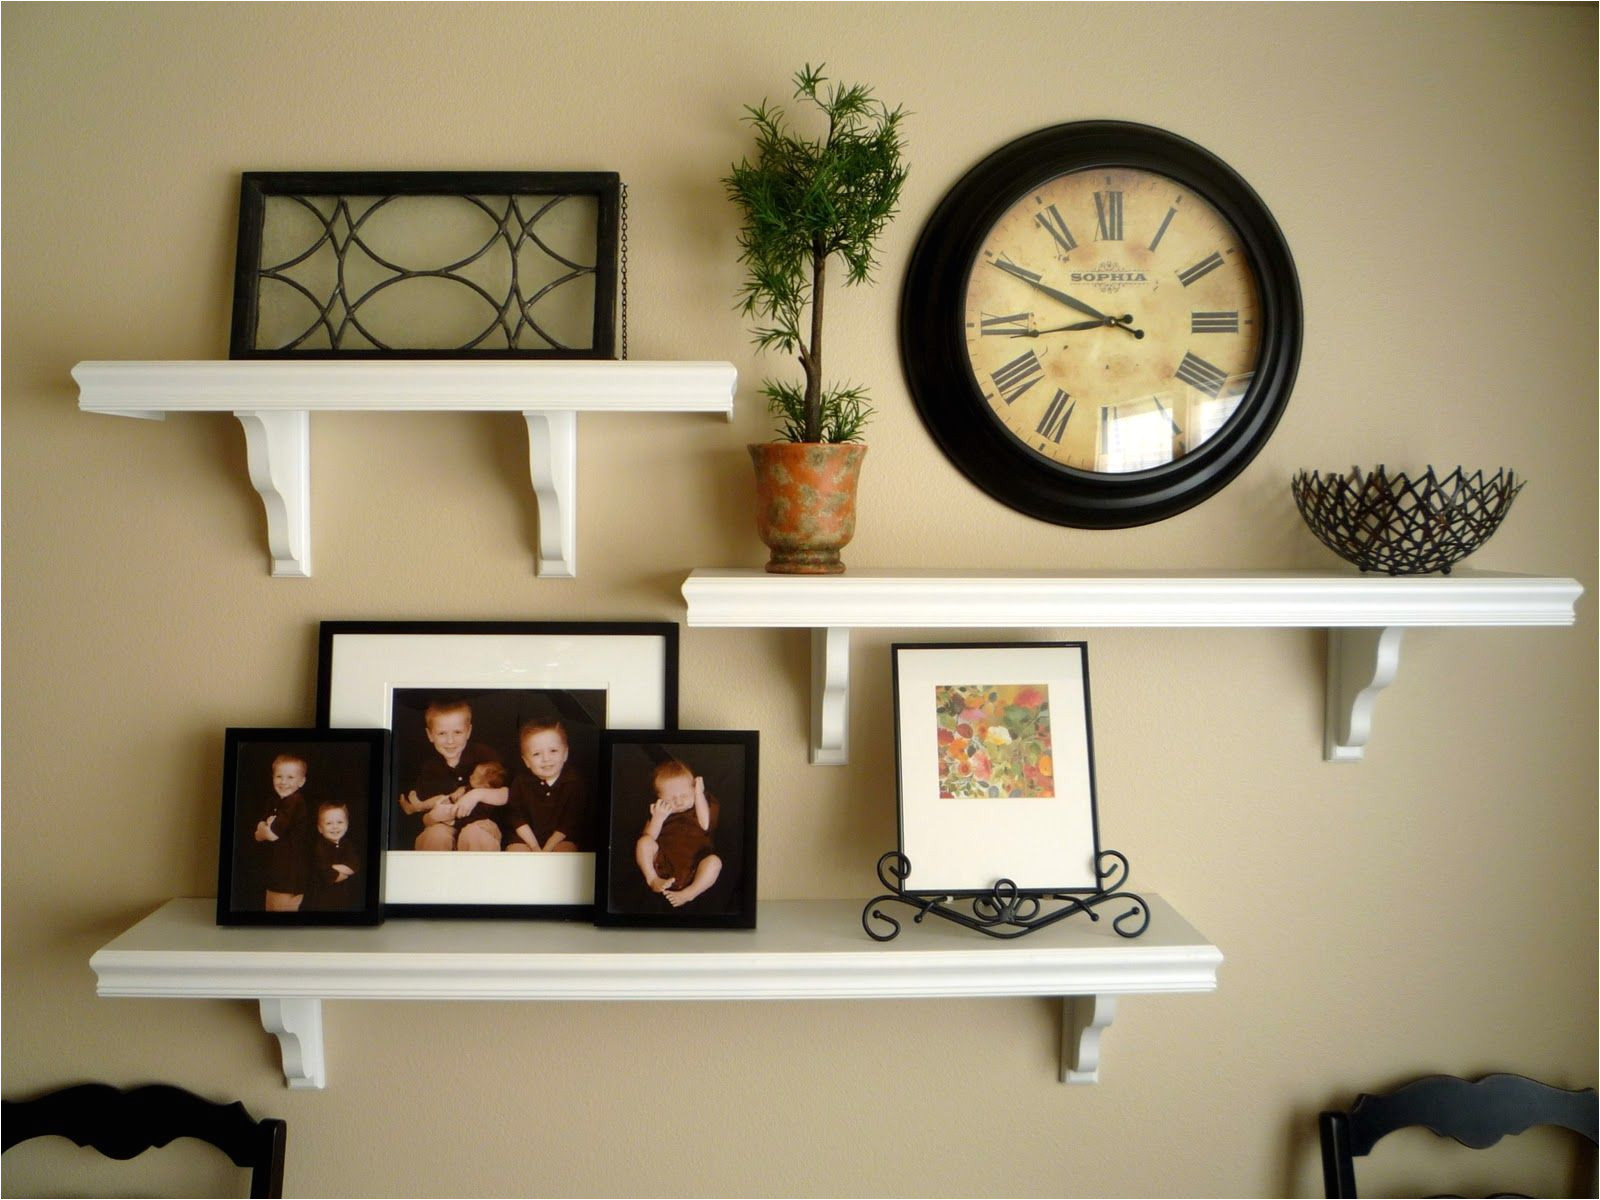 How to Decorate A Half Wall Ledge Picture and Shelves On Wall together It All Started after Being